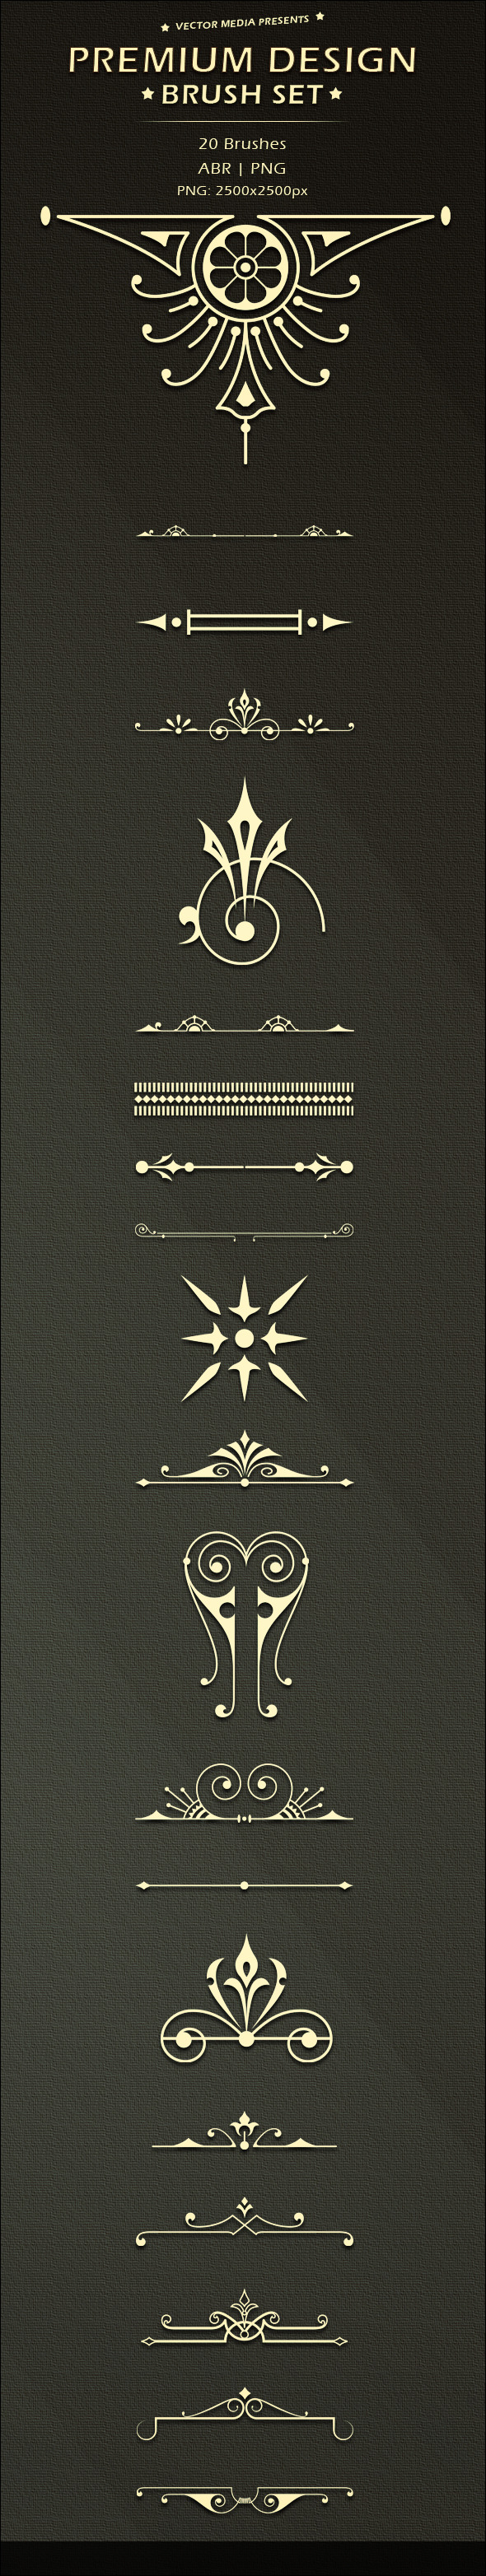 Premium Design - Brush Set - Flourishes Brushes